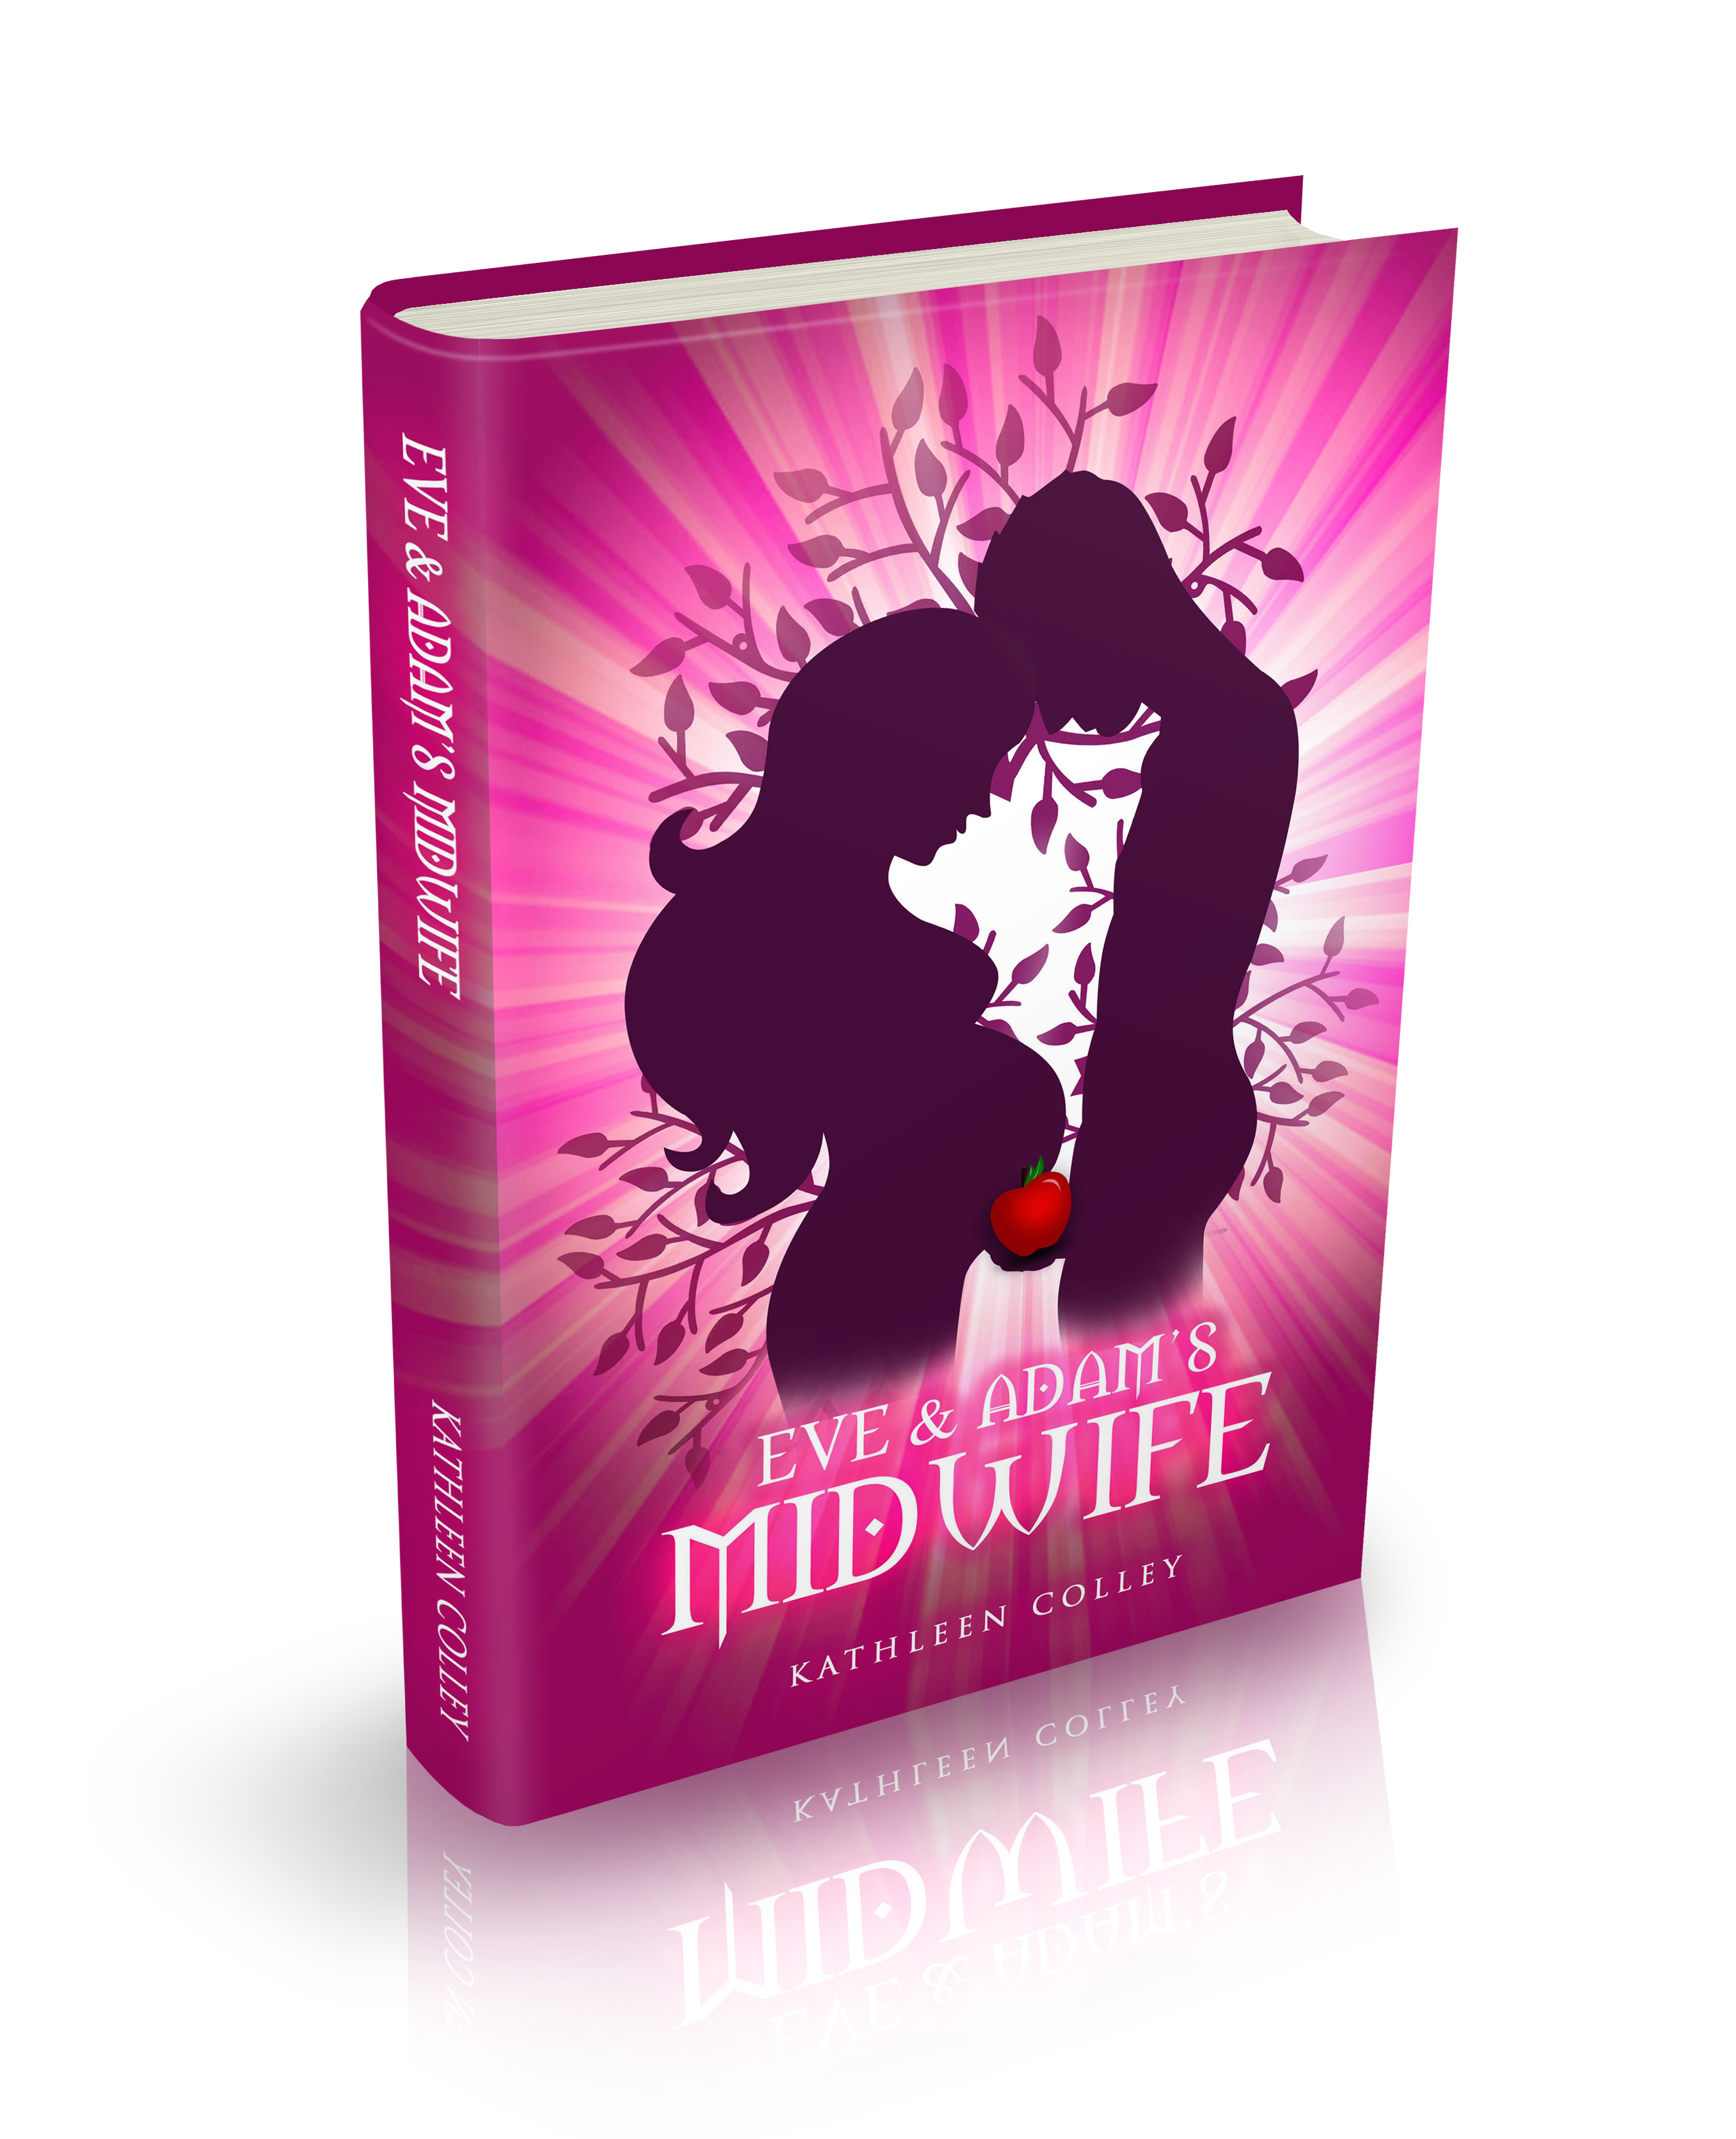 Eve adams midwife ebook instant download by kathleen colley eve adams midwife ebook malvernweather Images